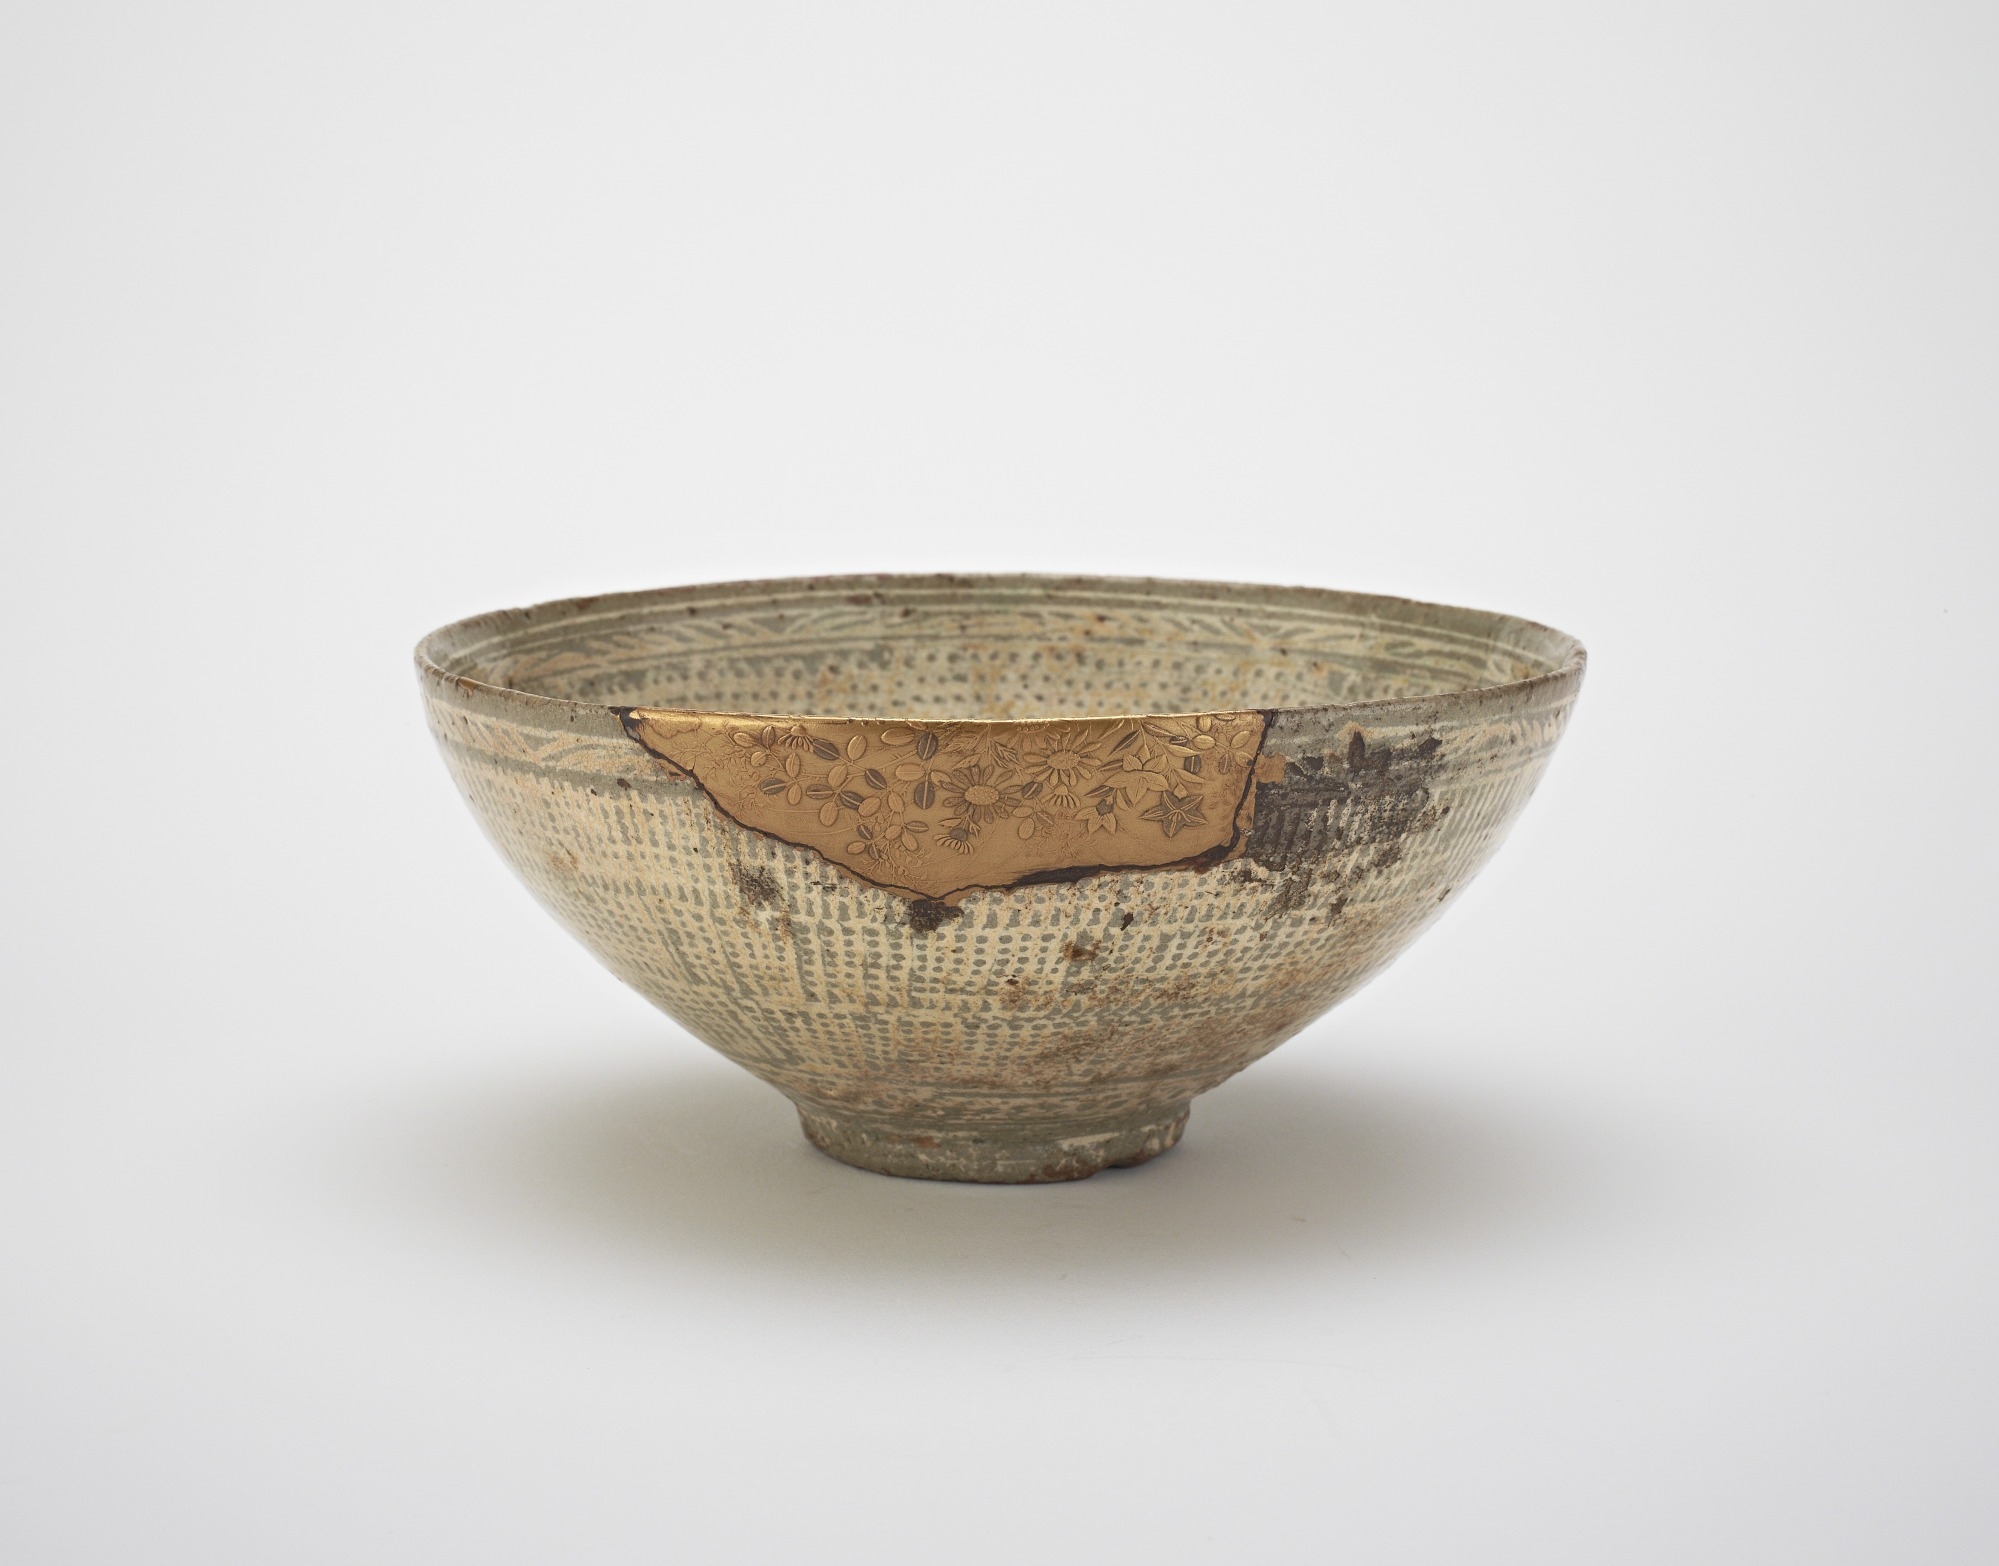 profile: Bowl, used in Japan as tea bowl